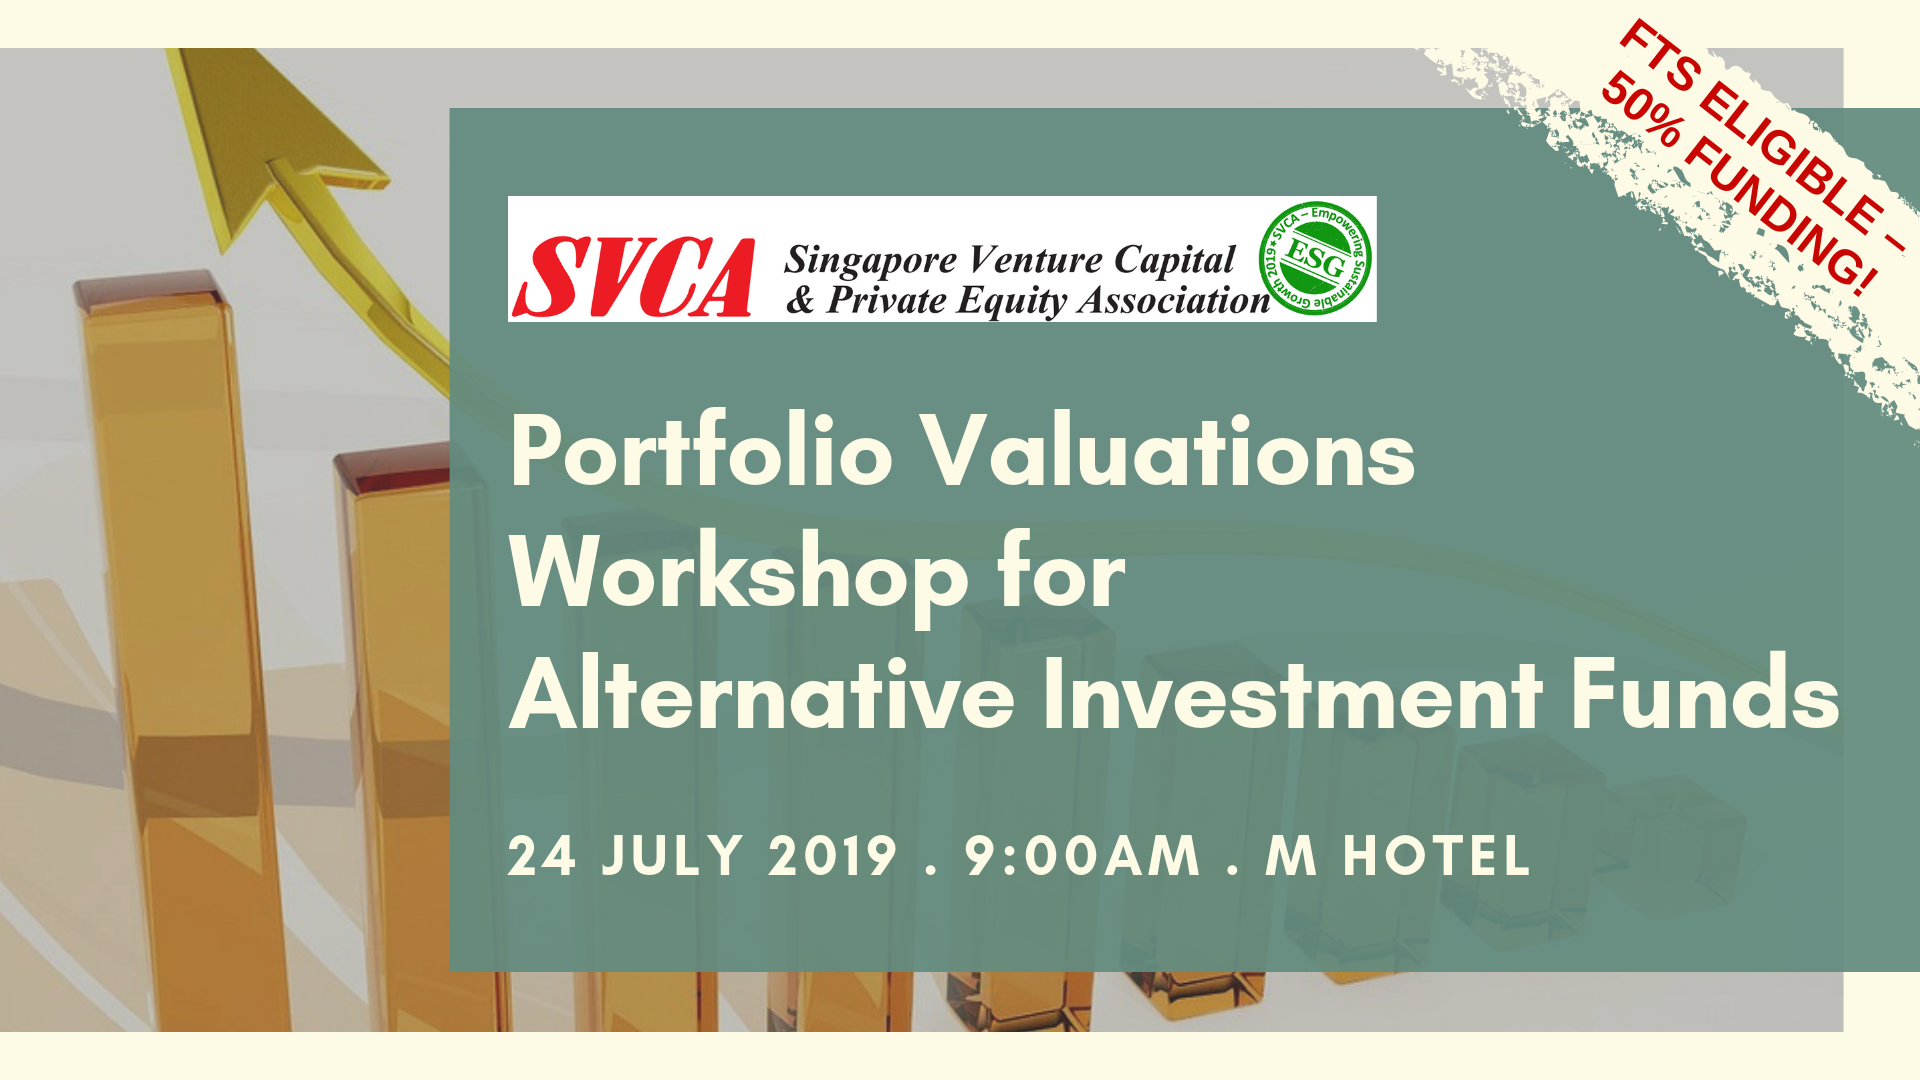 Portfolio Valuations Workshop for Alternative Investment Funds